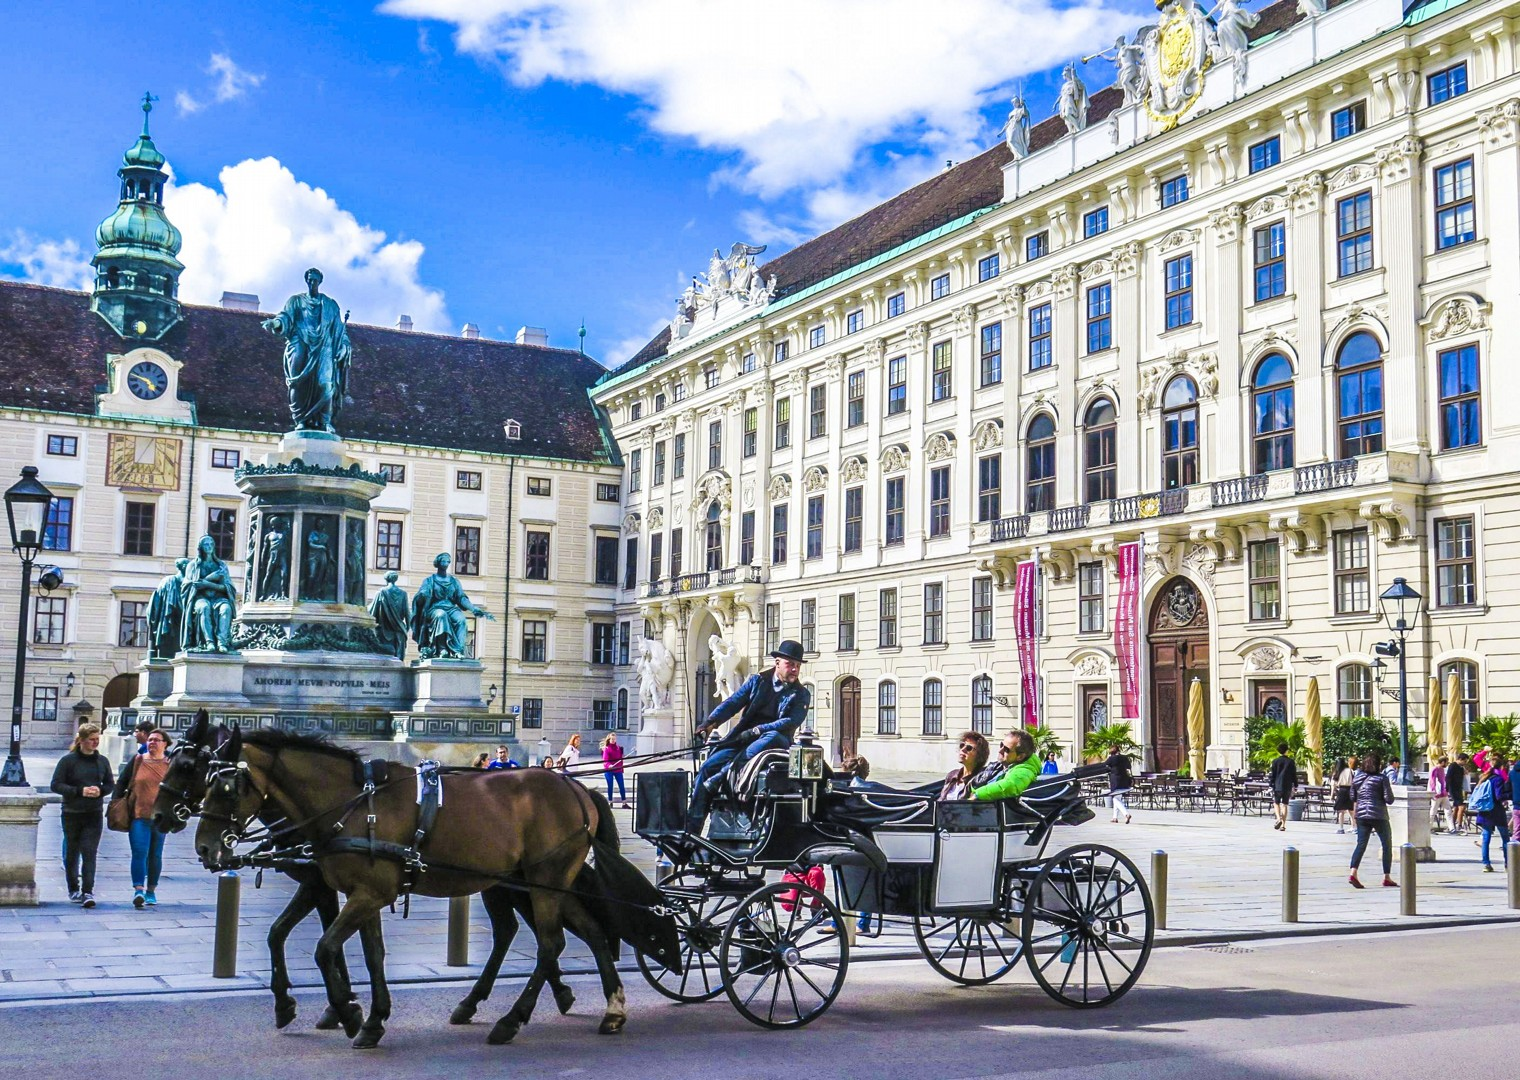 the-hofburg-palace-vienna-austria-bike-danube-cyclepath-tour.jpg - Germany and Austria - The Danube Cyclepath (8 Days) - Self-Guided Leisure Cycling Holiday - Leisure Cycling